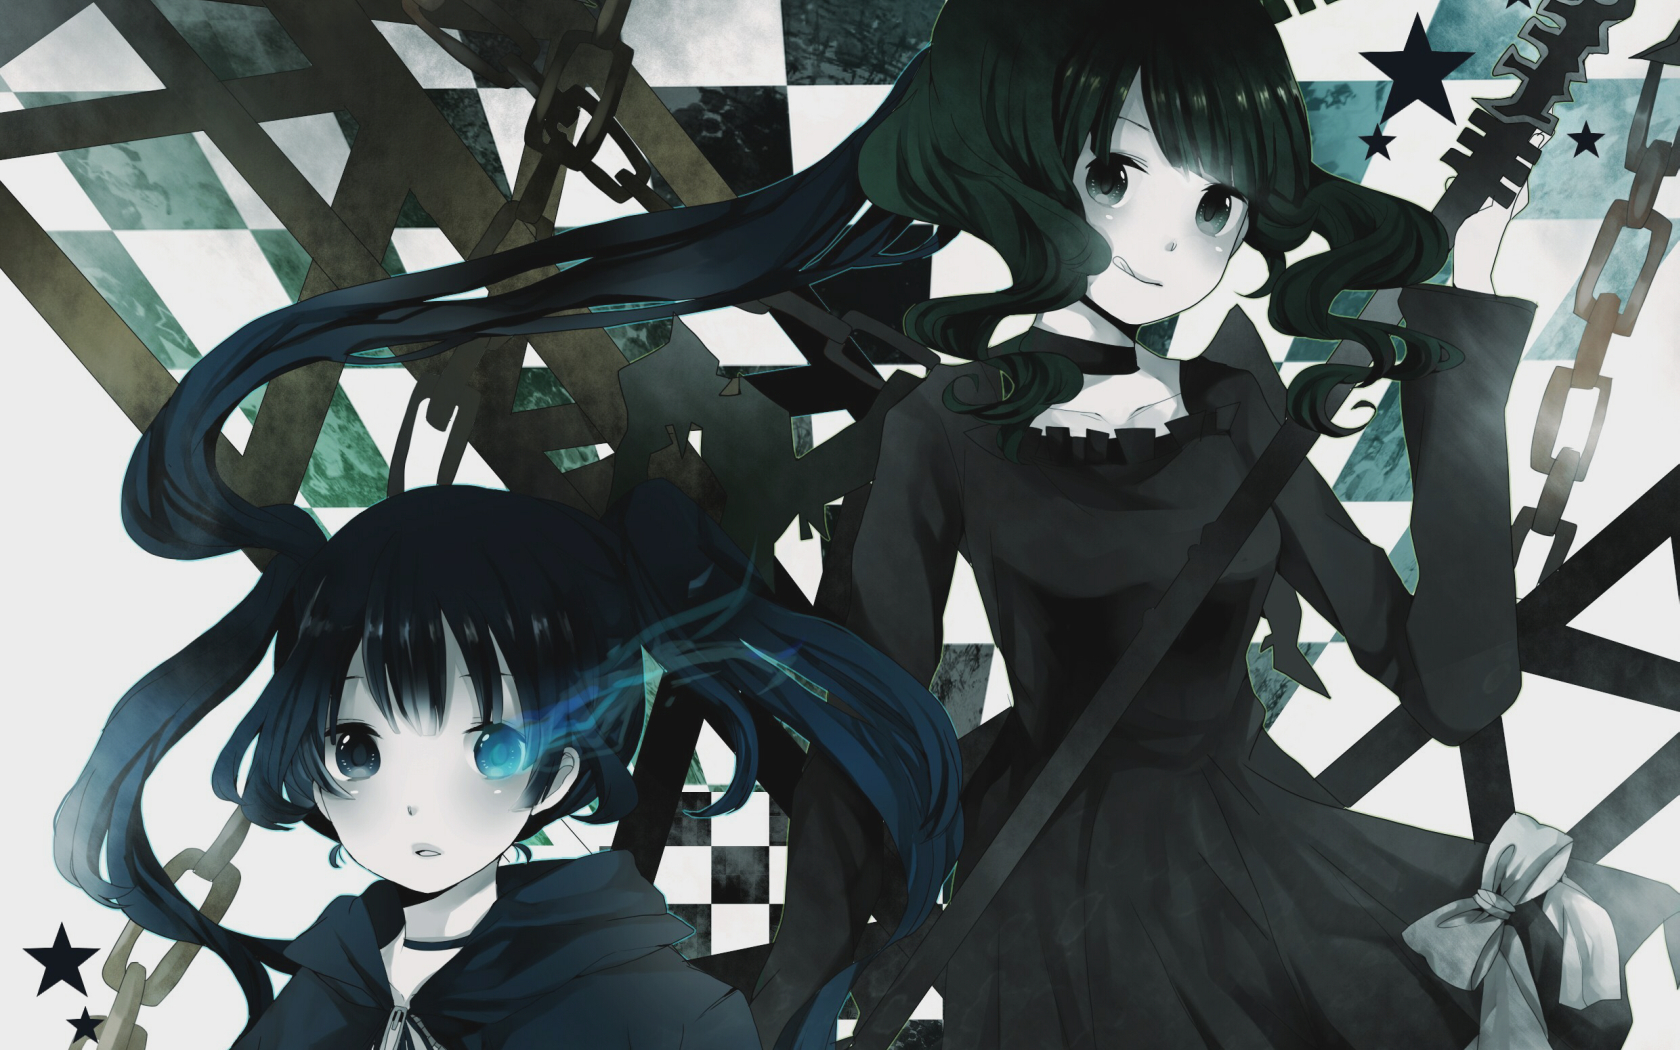 black rock Shooter Anime HD Wallpaper